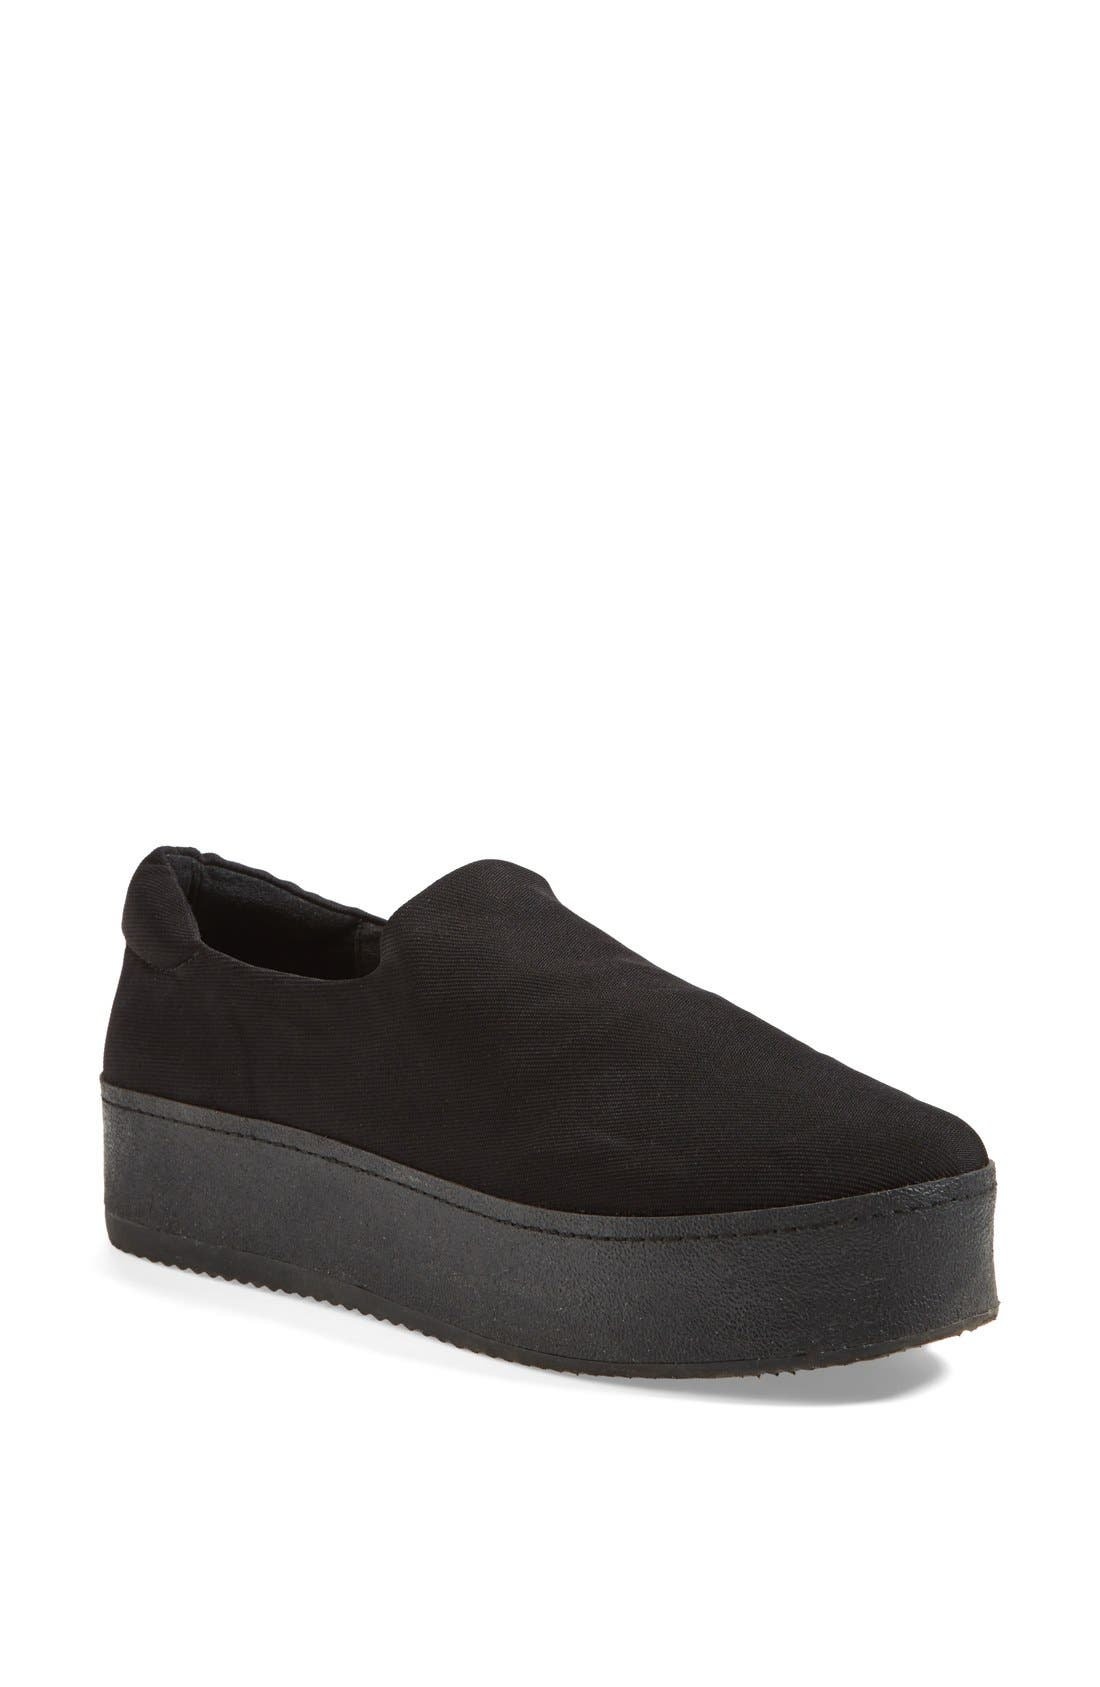 Alternate Image 1 Selected - Opening Ceremony 'Grunge' Slip-On Platform Sneaker (Women)